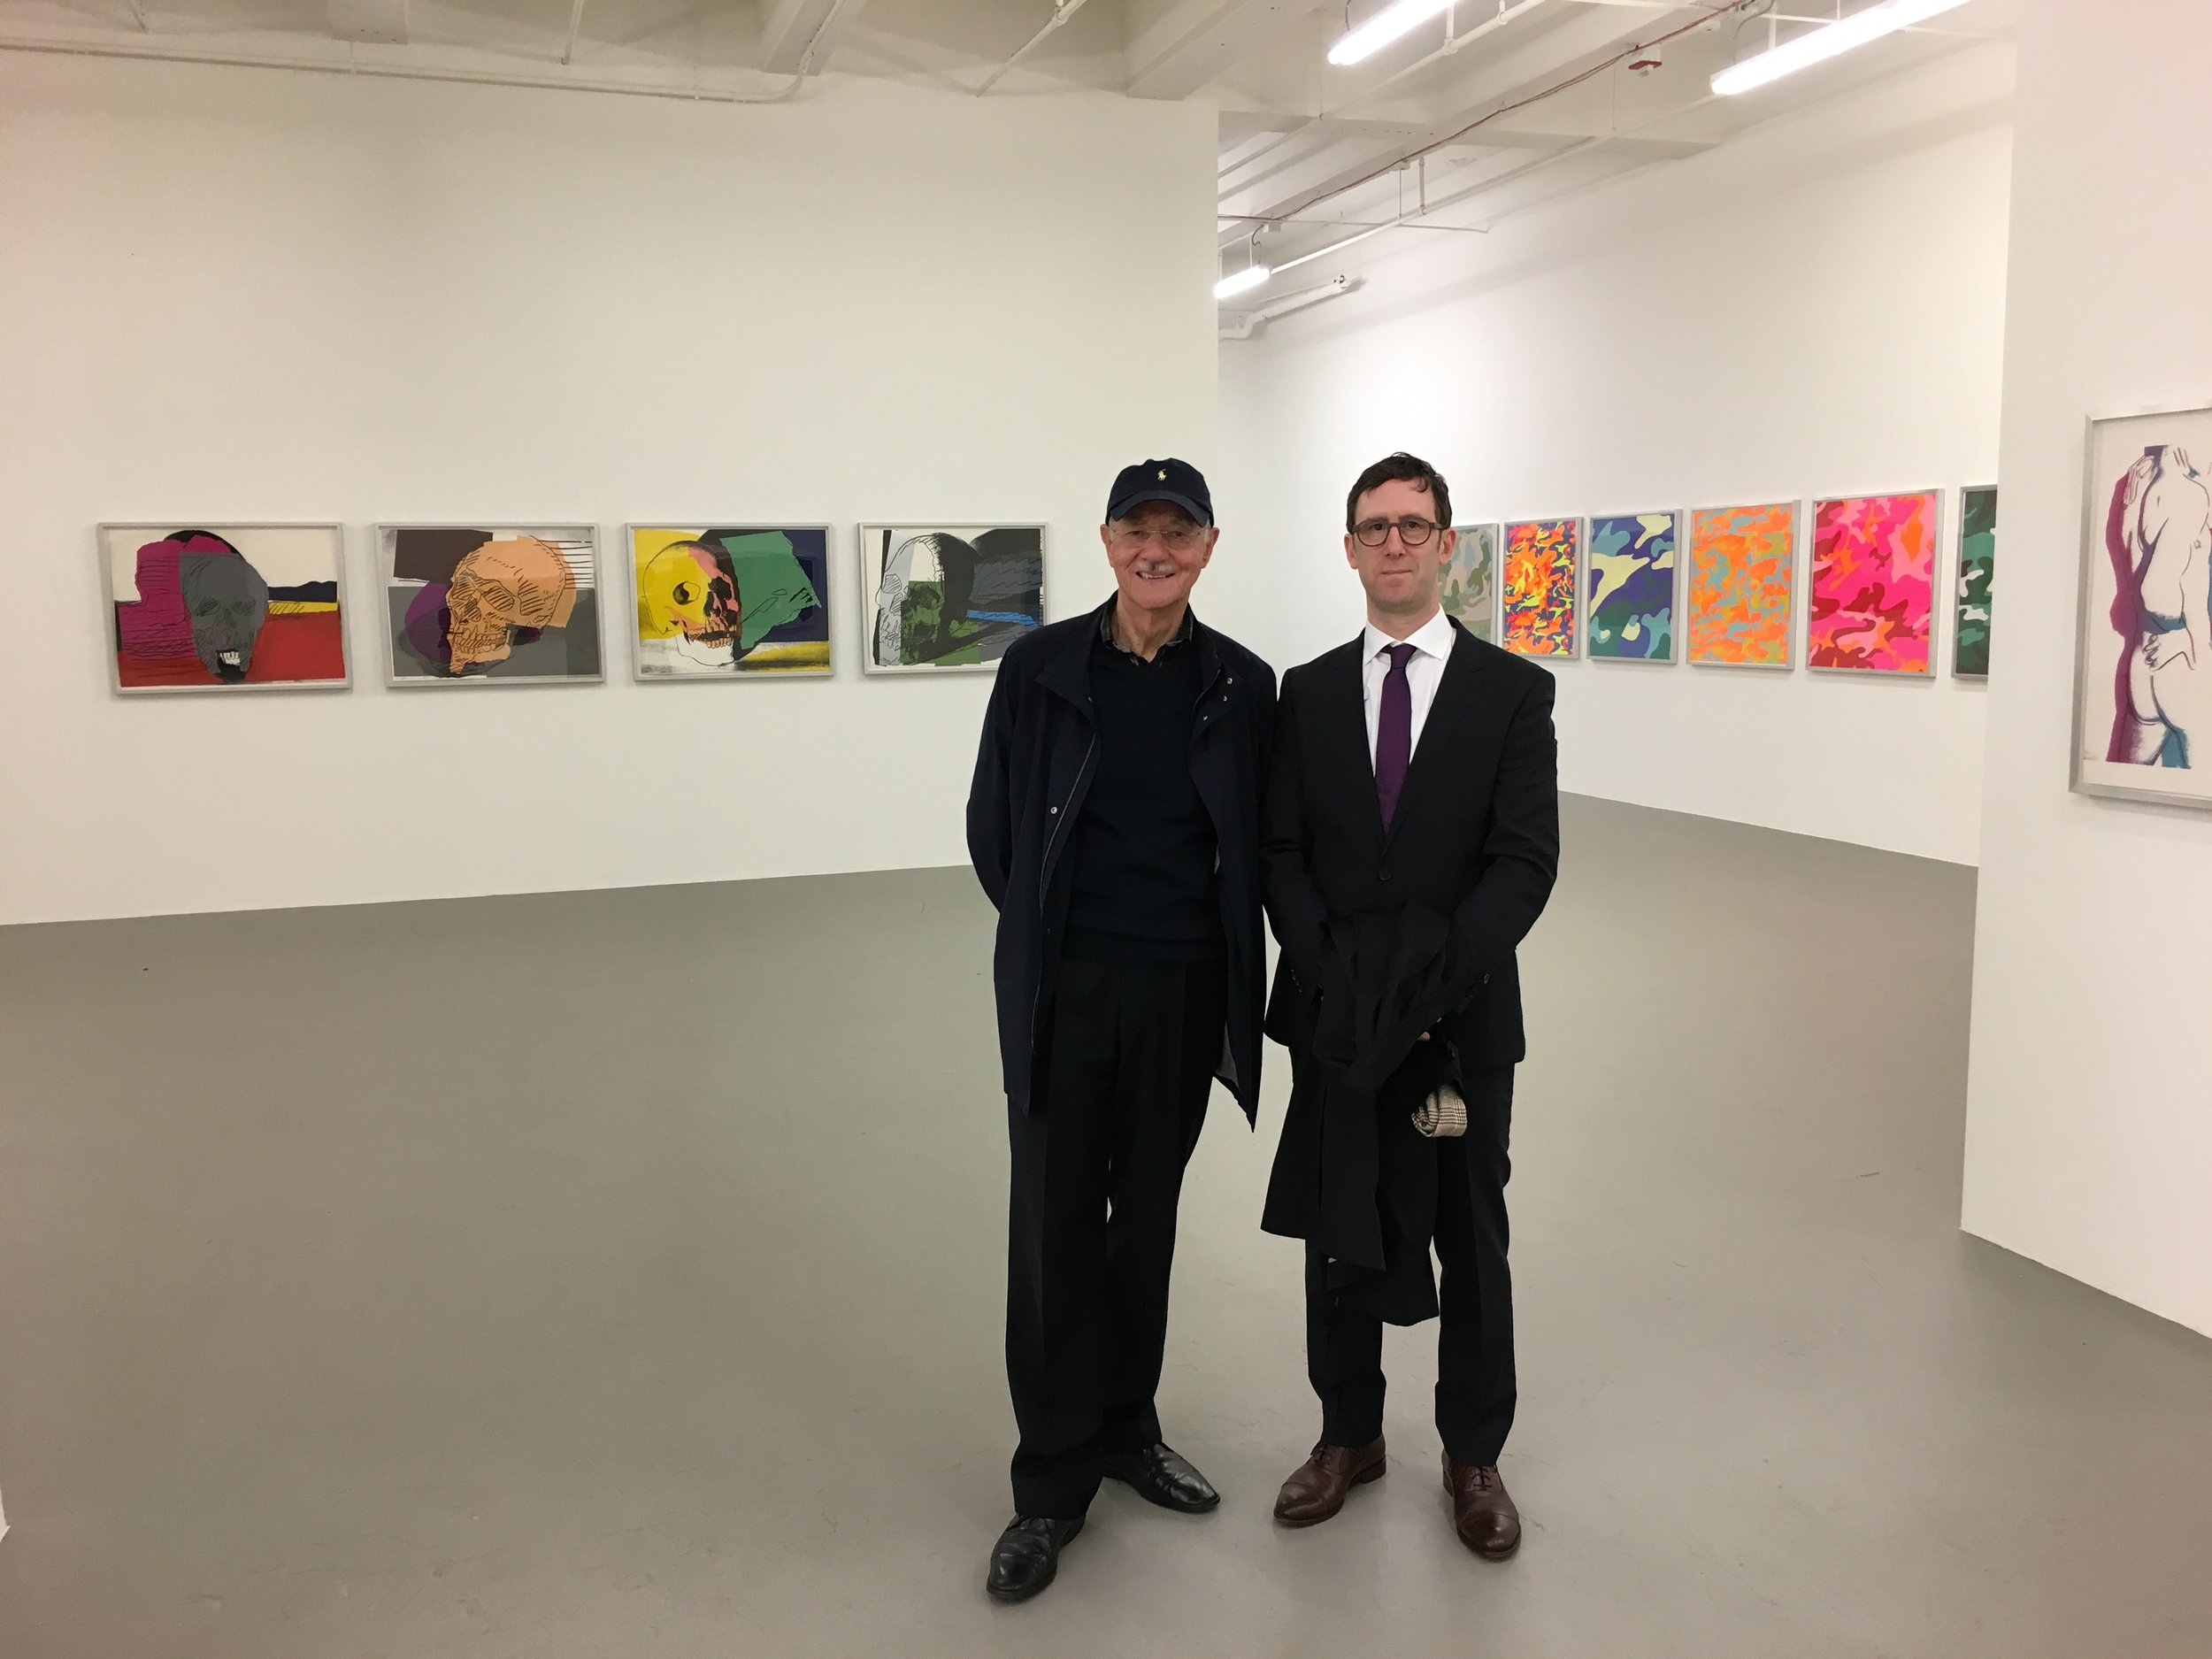 Mr. Karlheinz Essl and John Silvis at the Ayn Foundation, Mana Contemporary